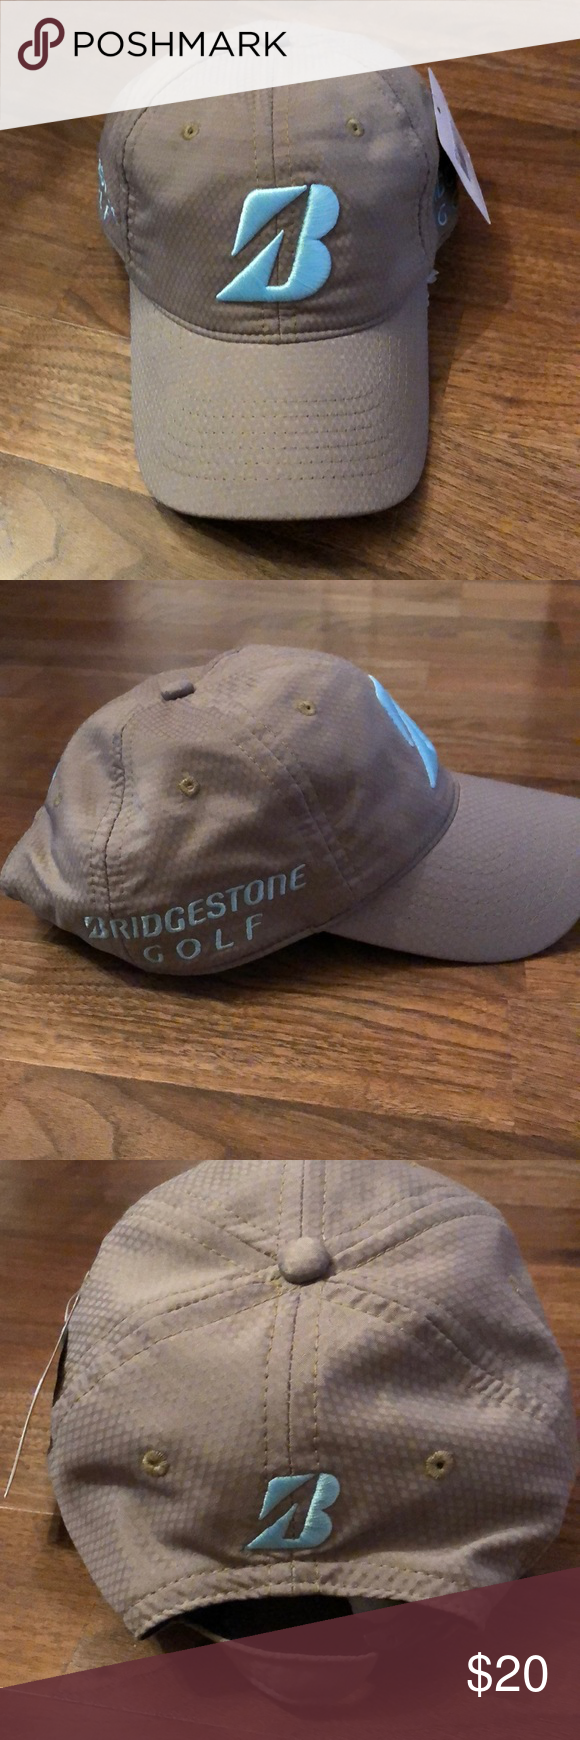 c0d7bd4a Bridgestone Golf Khaki Blue Kuchar Baseball Hat New with tags. From the  Kuchar Collection. Khaki background with baby blue embroidery.